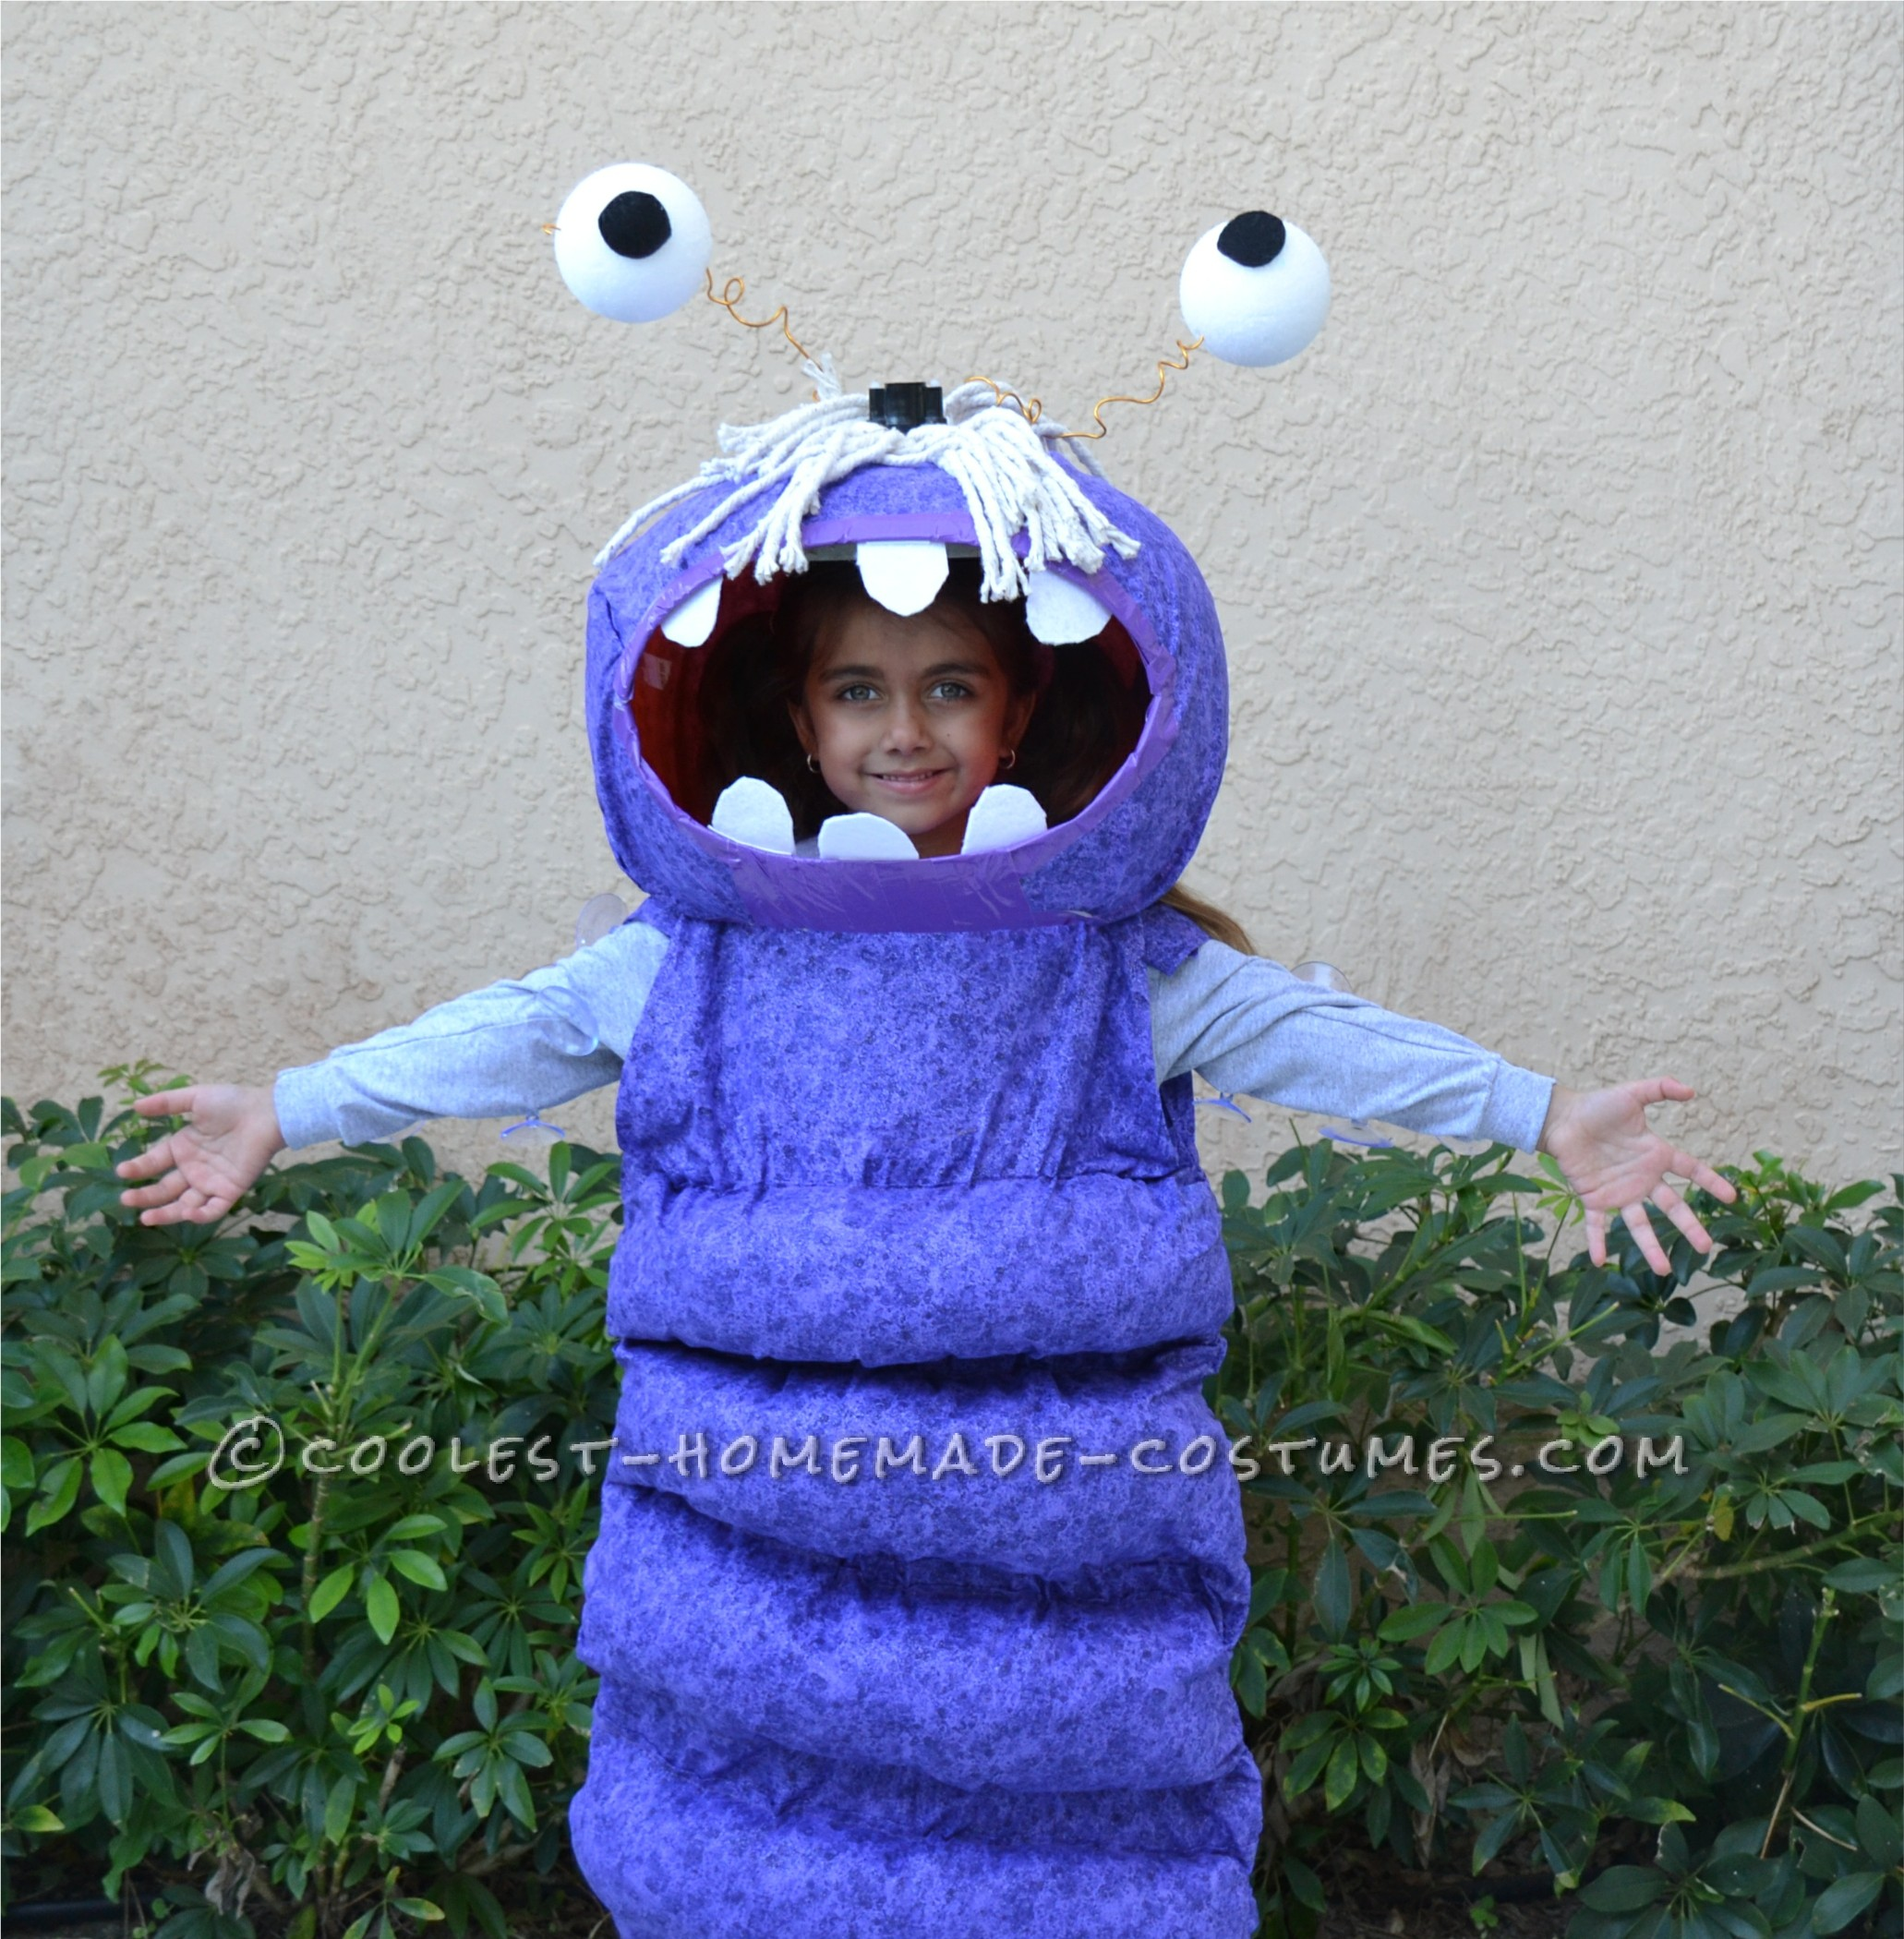 Coolest Homemade BOO Costume for a Child